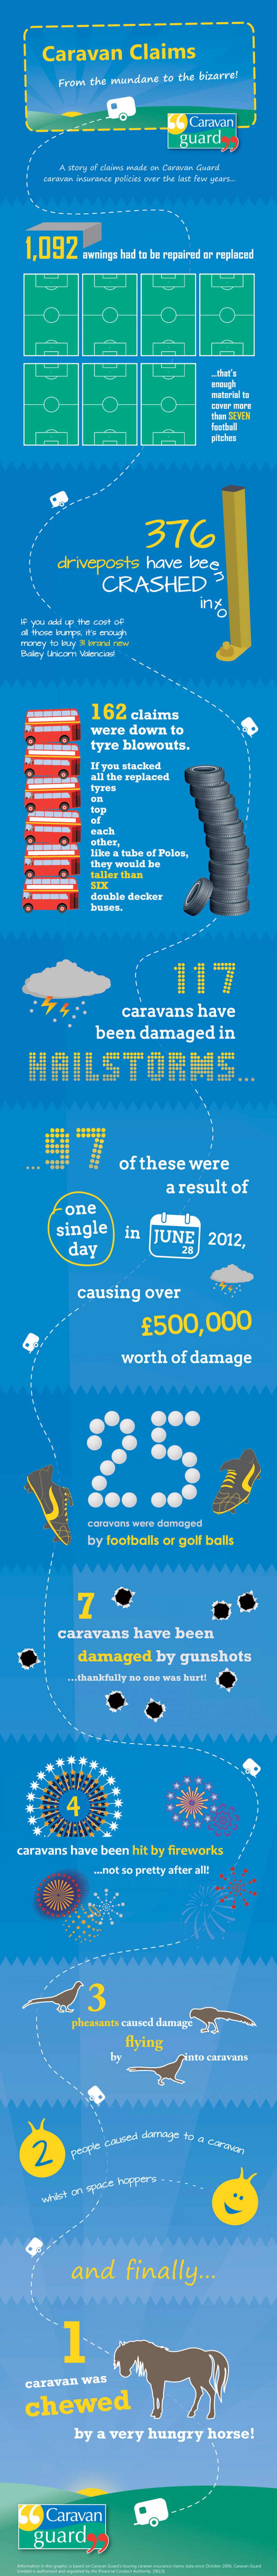 Crazy Caravan Insurance Claims Infographic